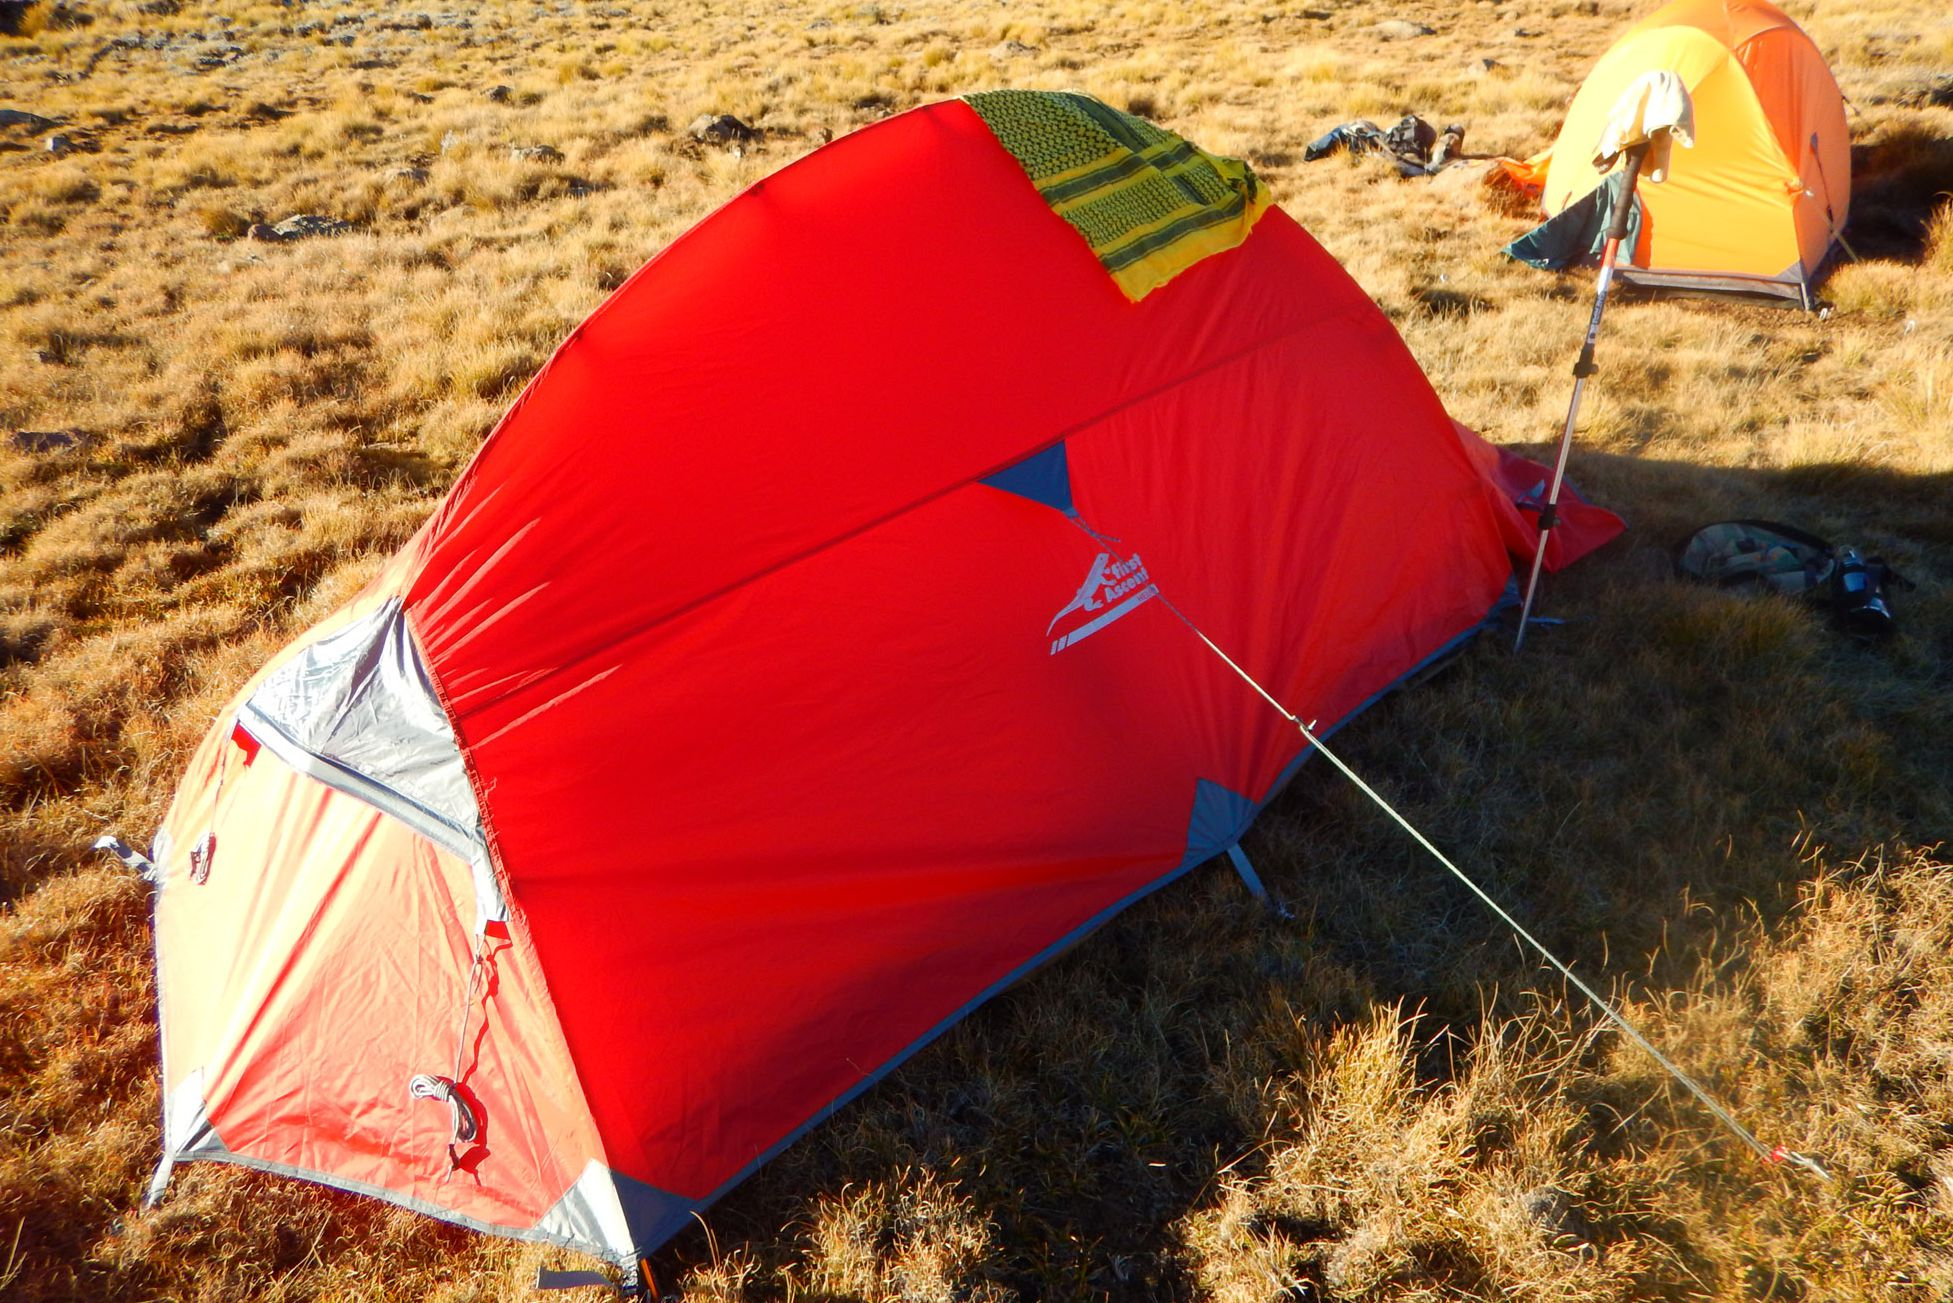 First Ascent Helios Tent